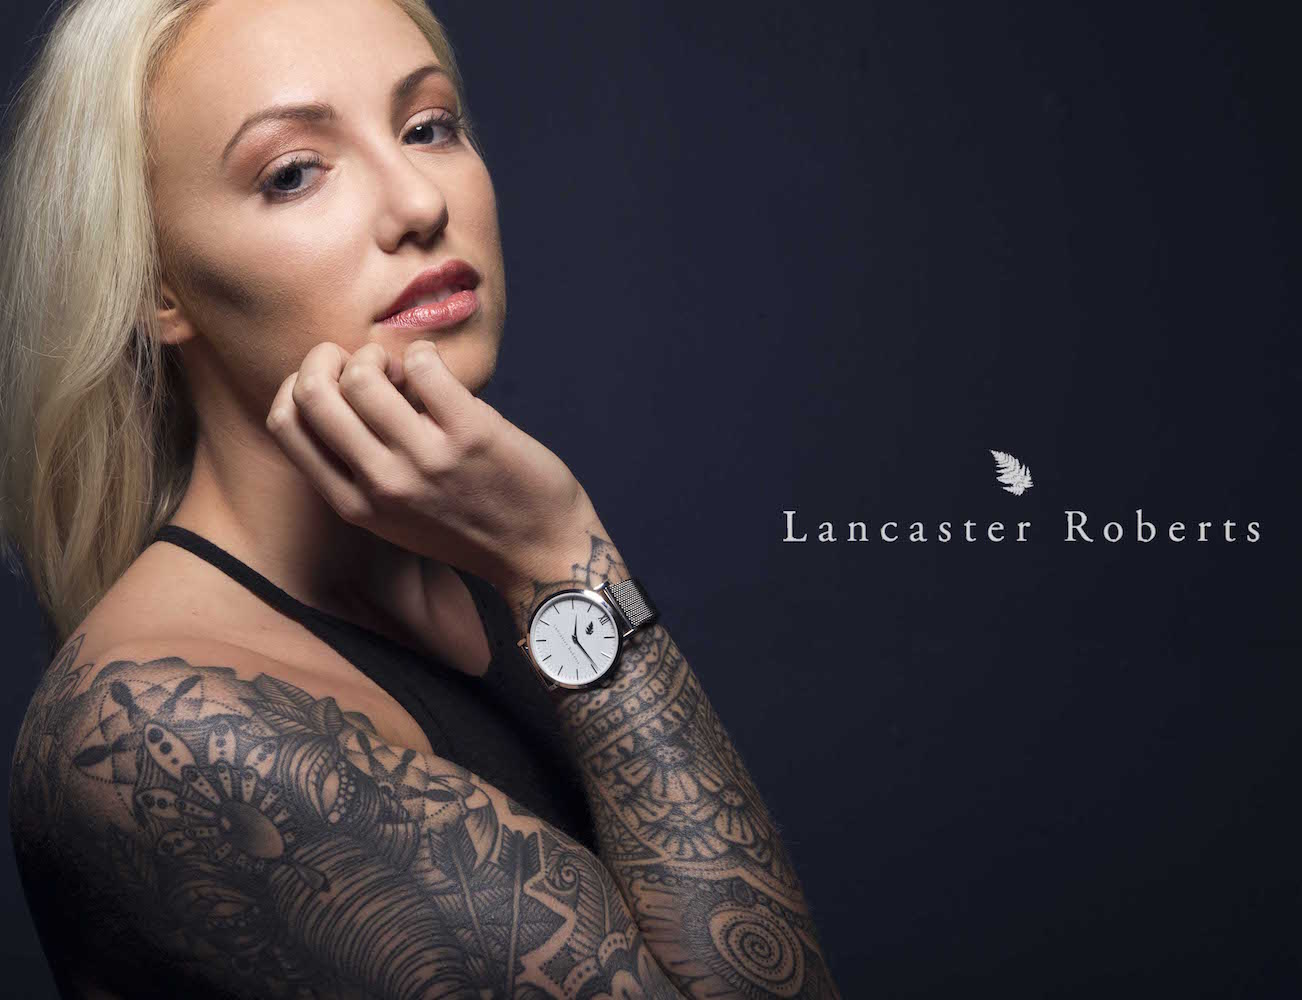 lancaster-roberts-first-luxury-watch-collection-03